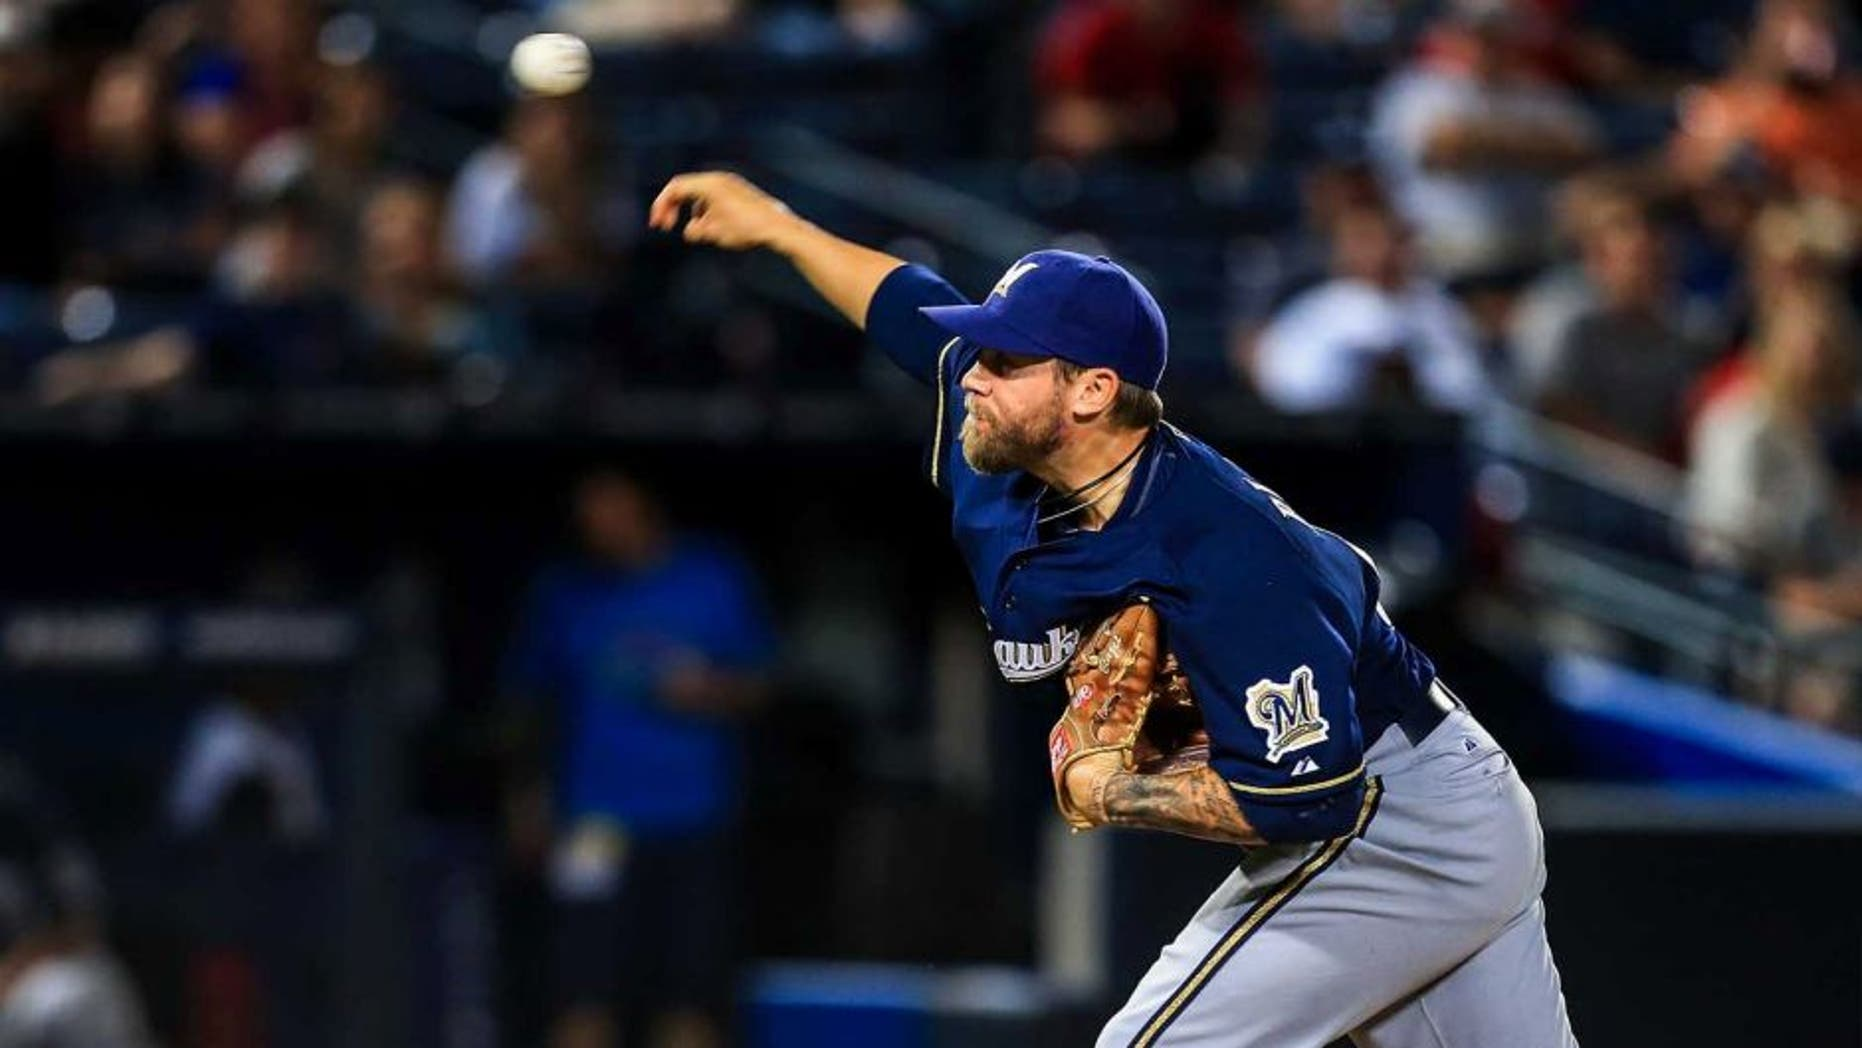 Sep 23, 2013; Atlanta, GA, USA; Milwaukee Brewers relief pitcher Michael Blazek (54) pitches in the ninth inning against the Atlanta Braves at Turner Field. The Brewers won 5-0. Mandatory Credit: Daniel Shirey-USA TODAY Sports